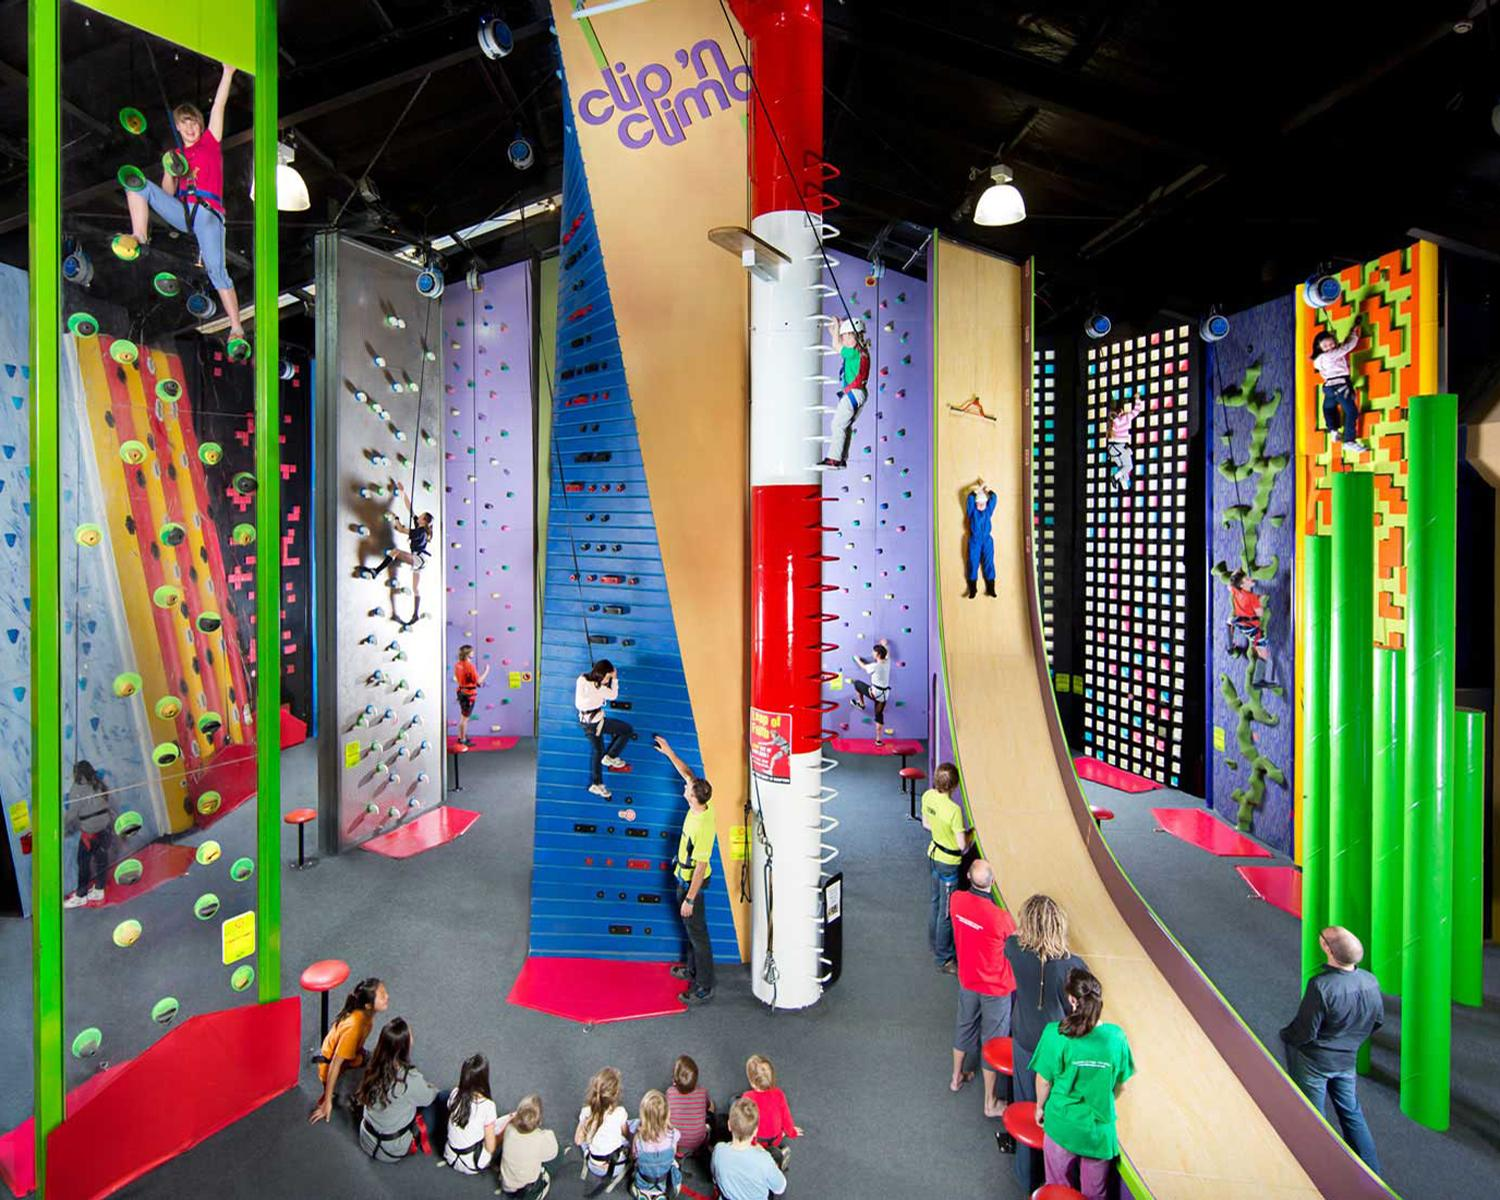 Clip 'n Climb is showcasing its outdoor challenges